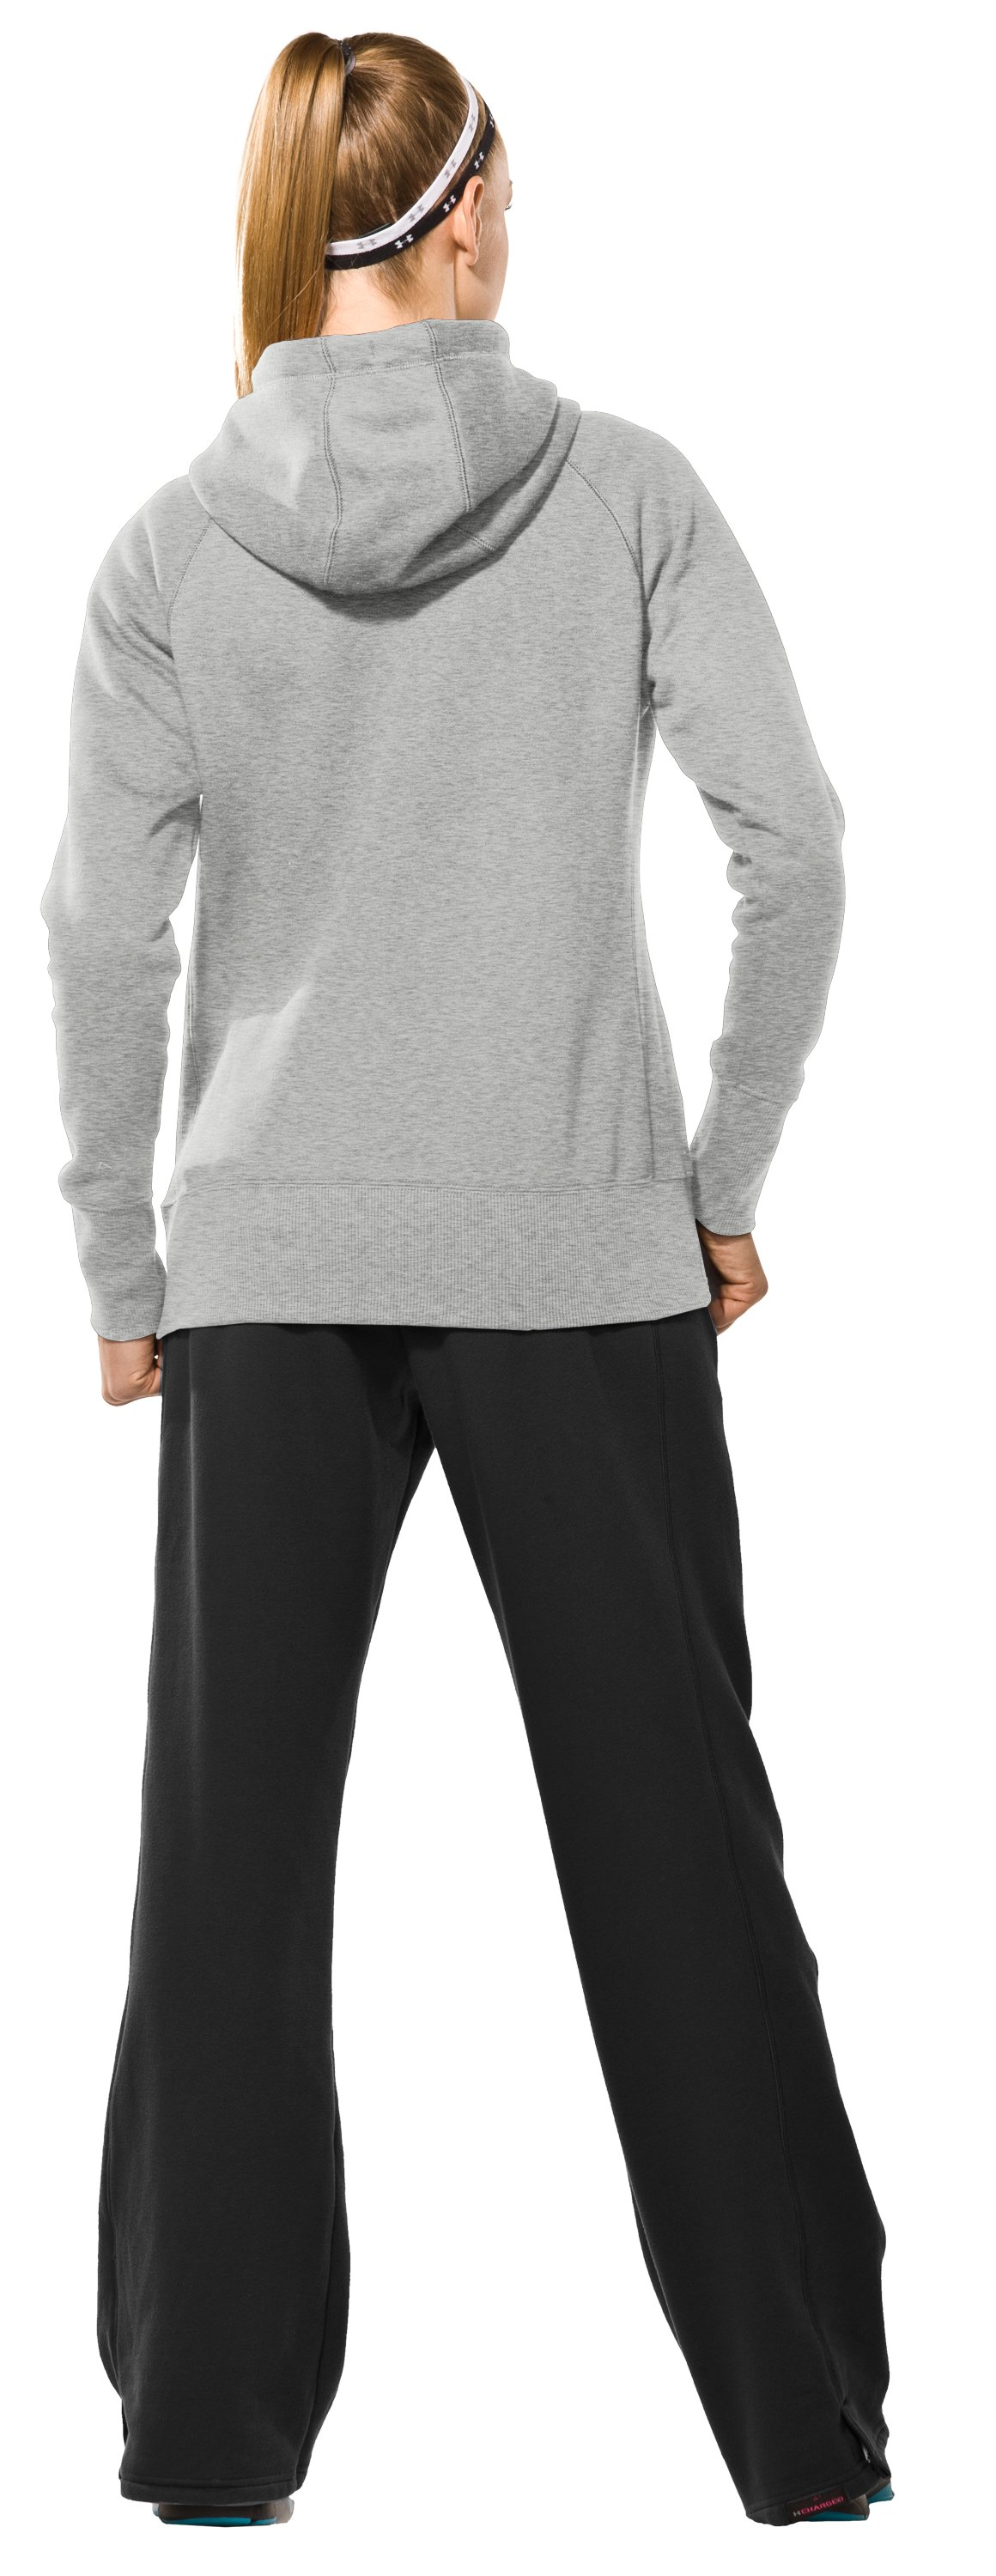 Women's Charged Cotton® Storm Full Zip Hoodie, Silver Heather, Back